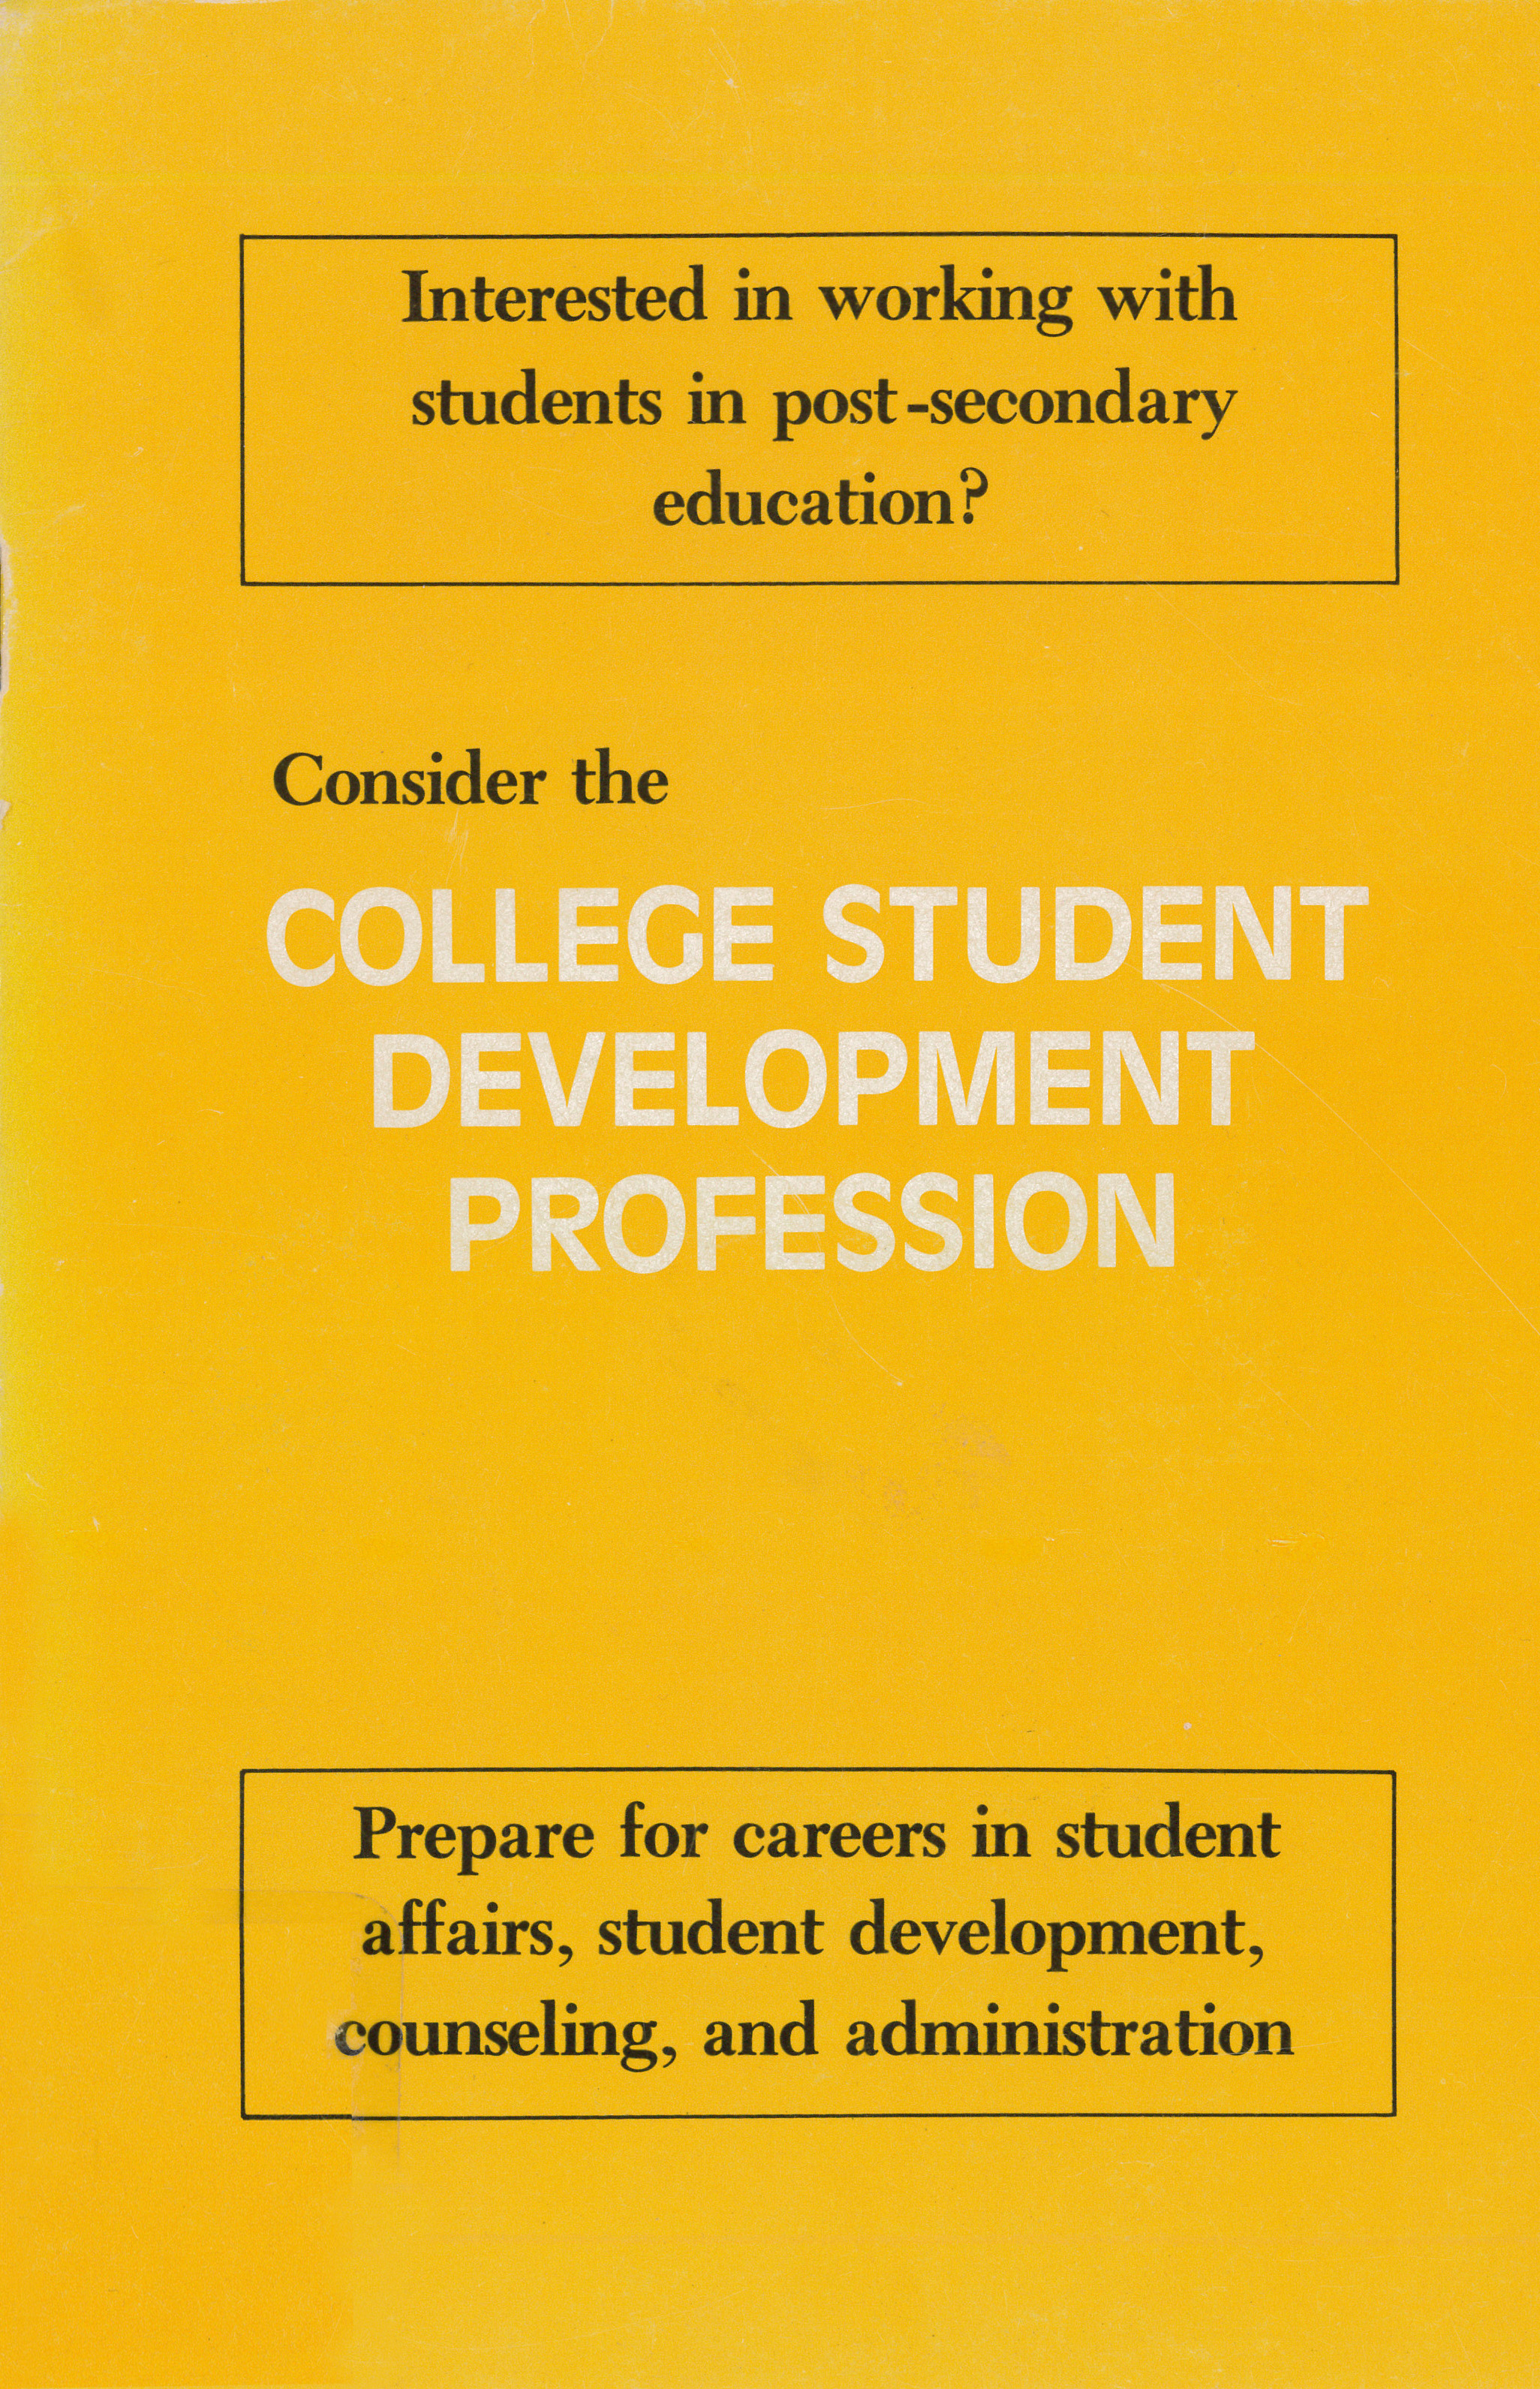 Consider the College Student Development Profession